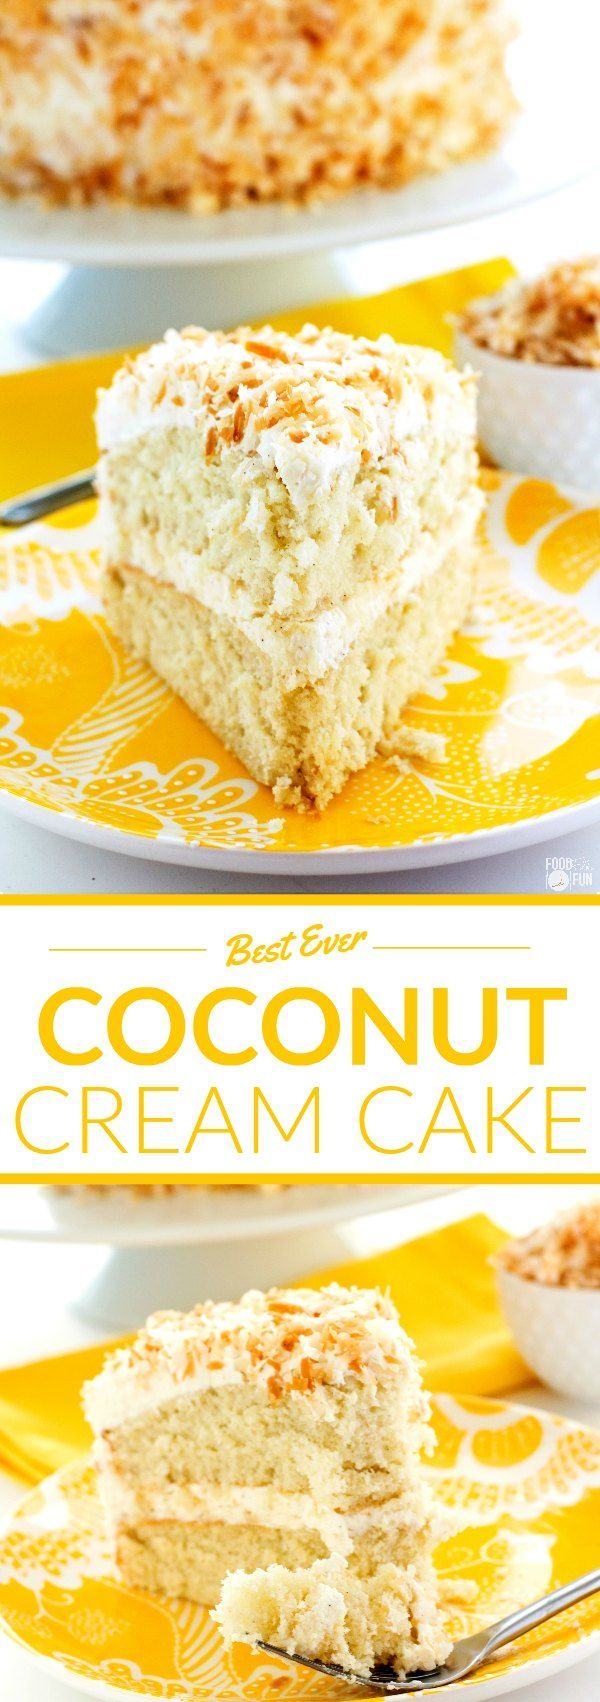 This recipe for Coconut Cream Cake is so tender, and it is deliciously covered in Coconut Swiss Meringue Buttercream and beautifully toasted coconut.